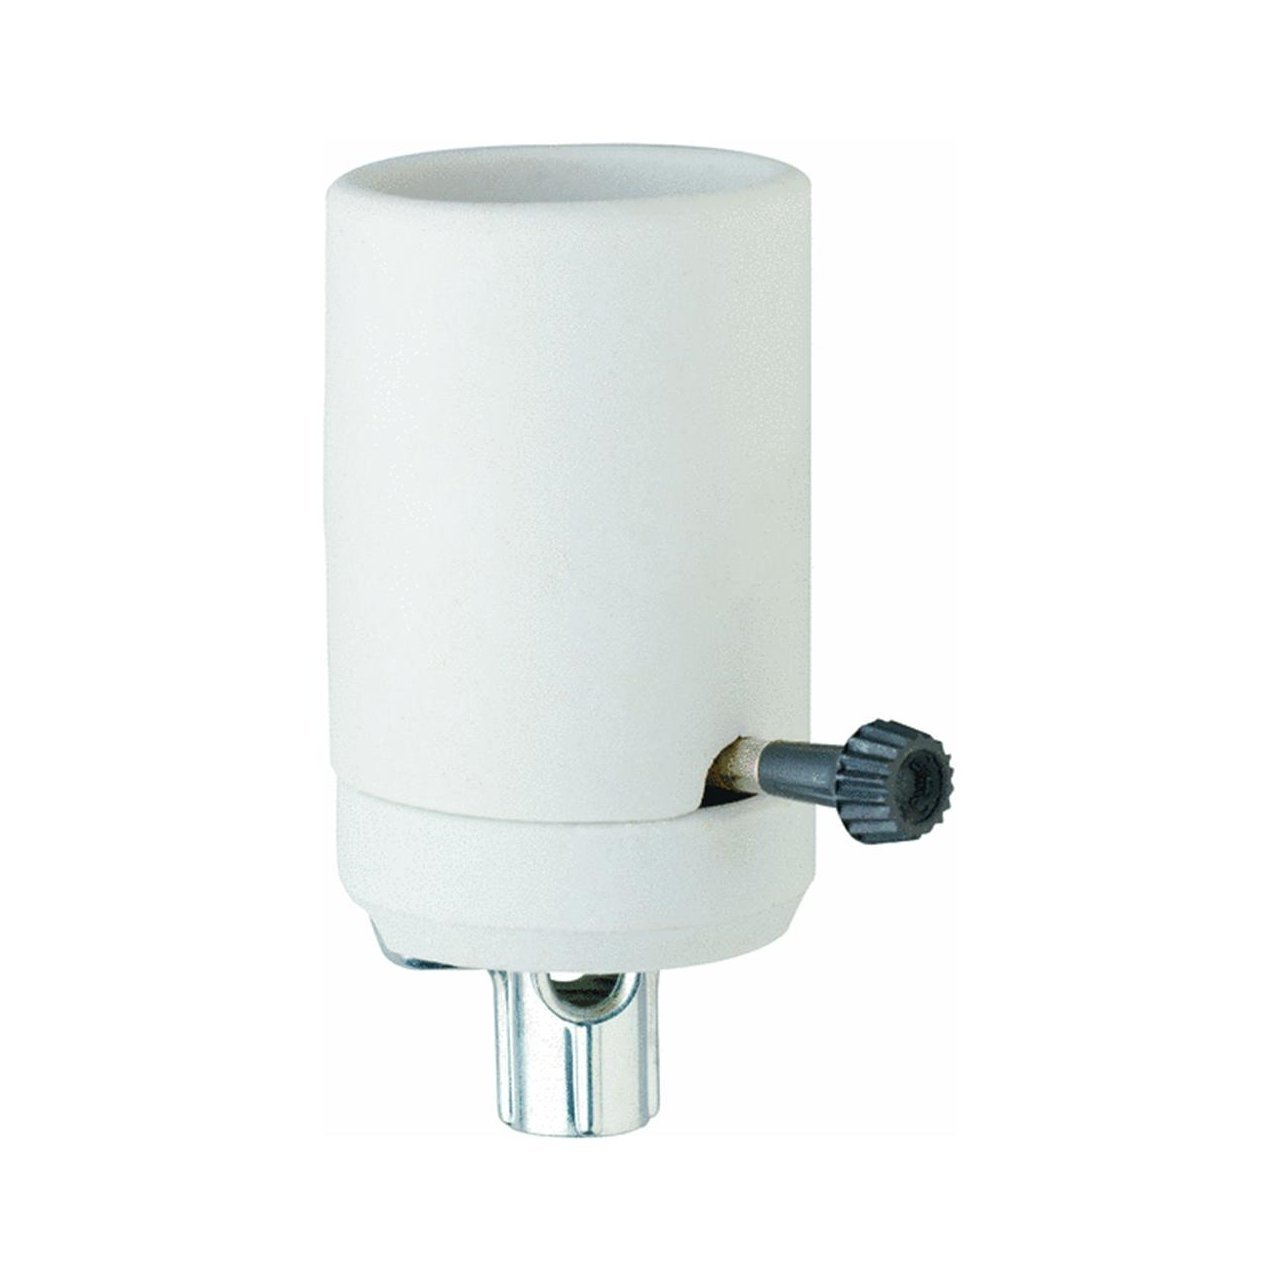 Pass & Seymour 8601 Mogul Base Lamp Socket by Pass & Seymour